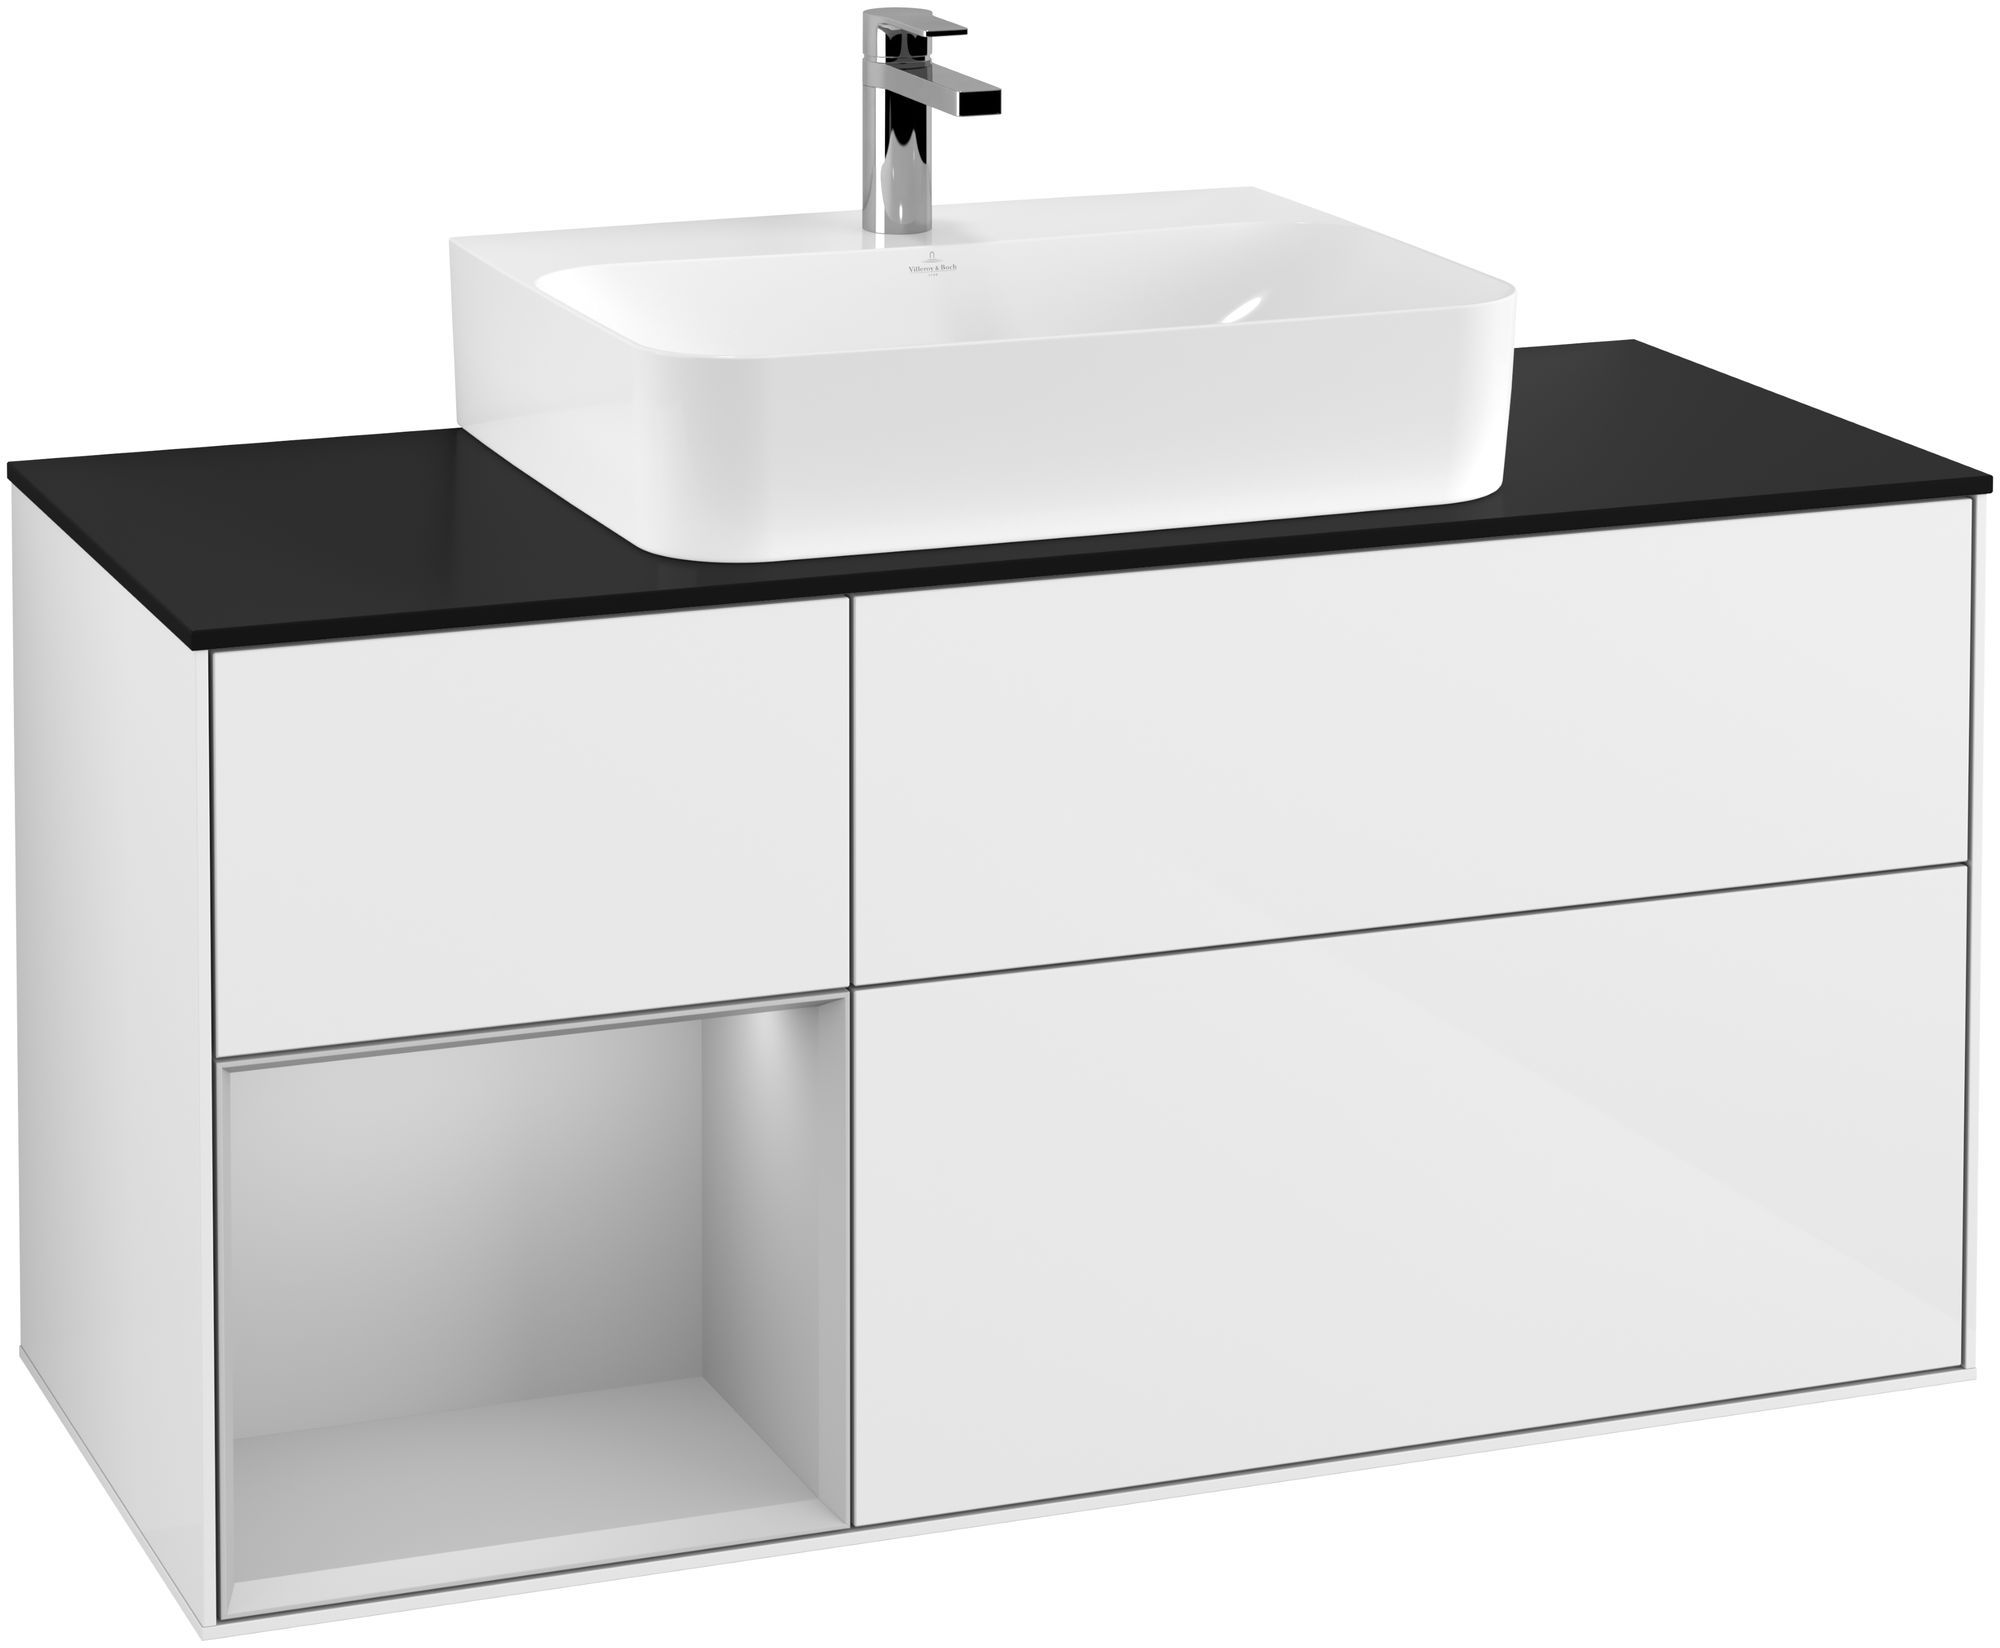 Villeroy & Boch Finion G16 Waschtischunterschrank mit Regalelement 3 Auszüge für WT mittig LED-Beleuchtung B:120xH:60,3xT:50,1cm Front, Korpus: Glossy White Lack, Regal: Light Grey Matt, Glasplatte: Black Matt G162GJGF